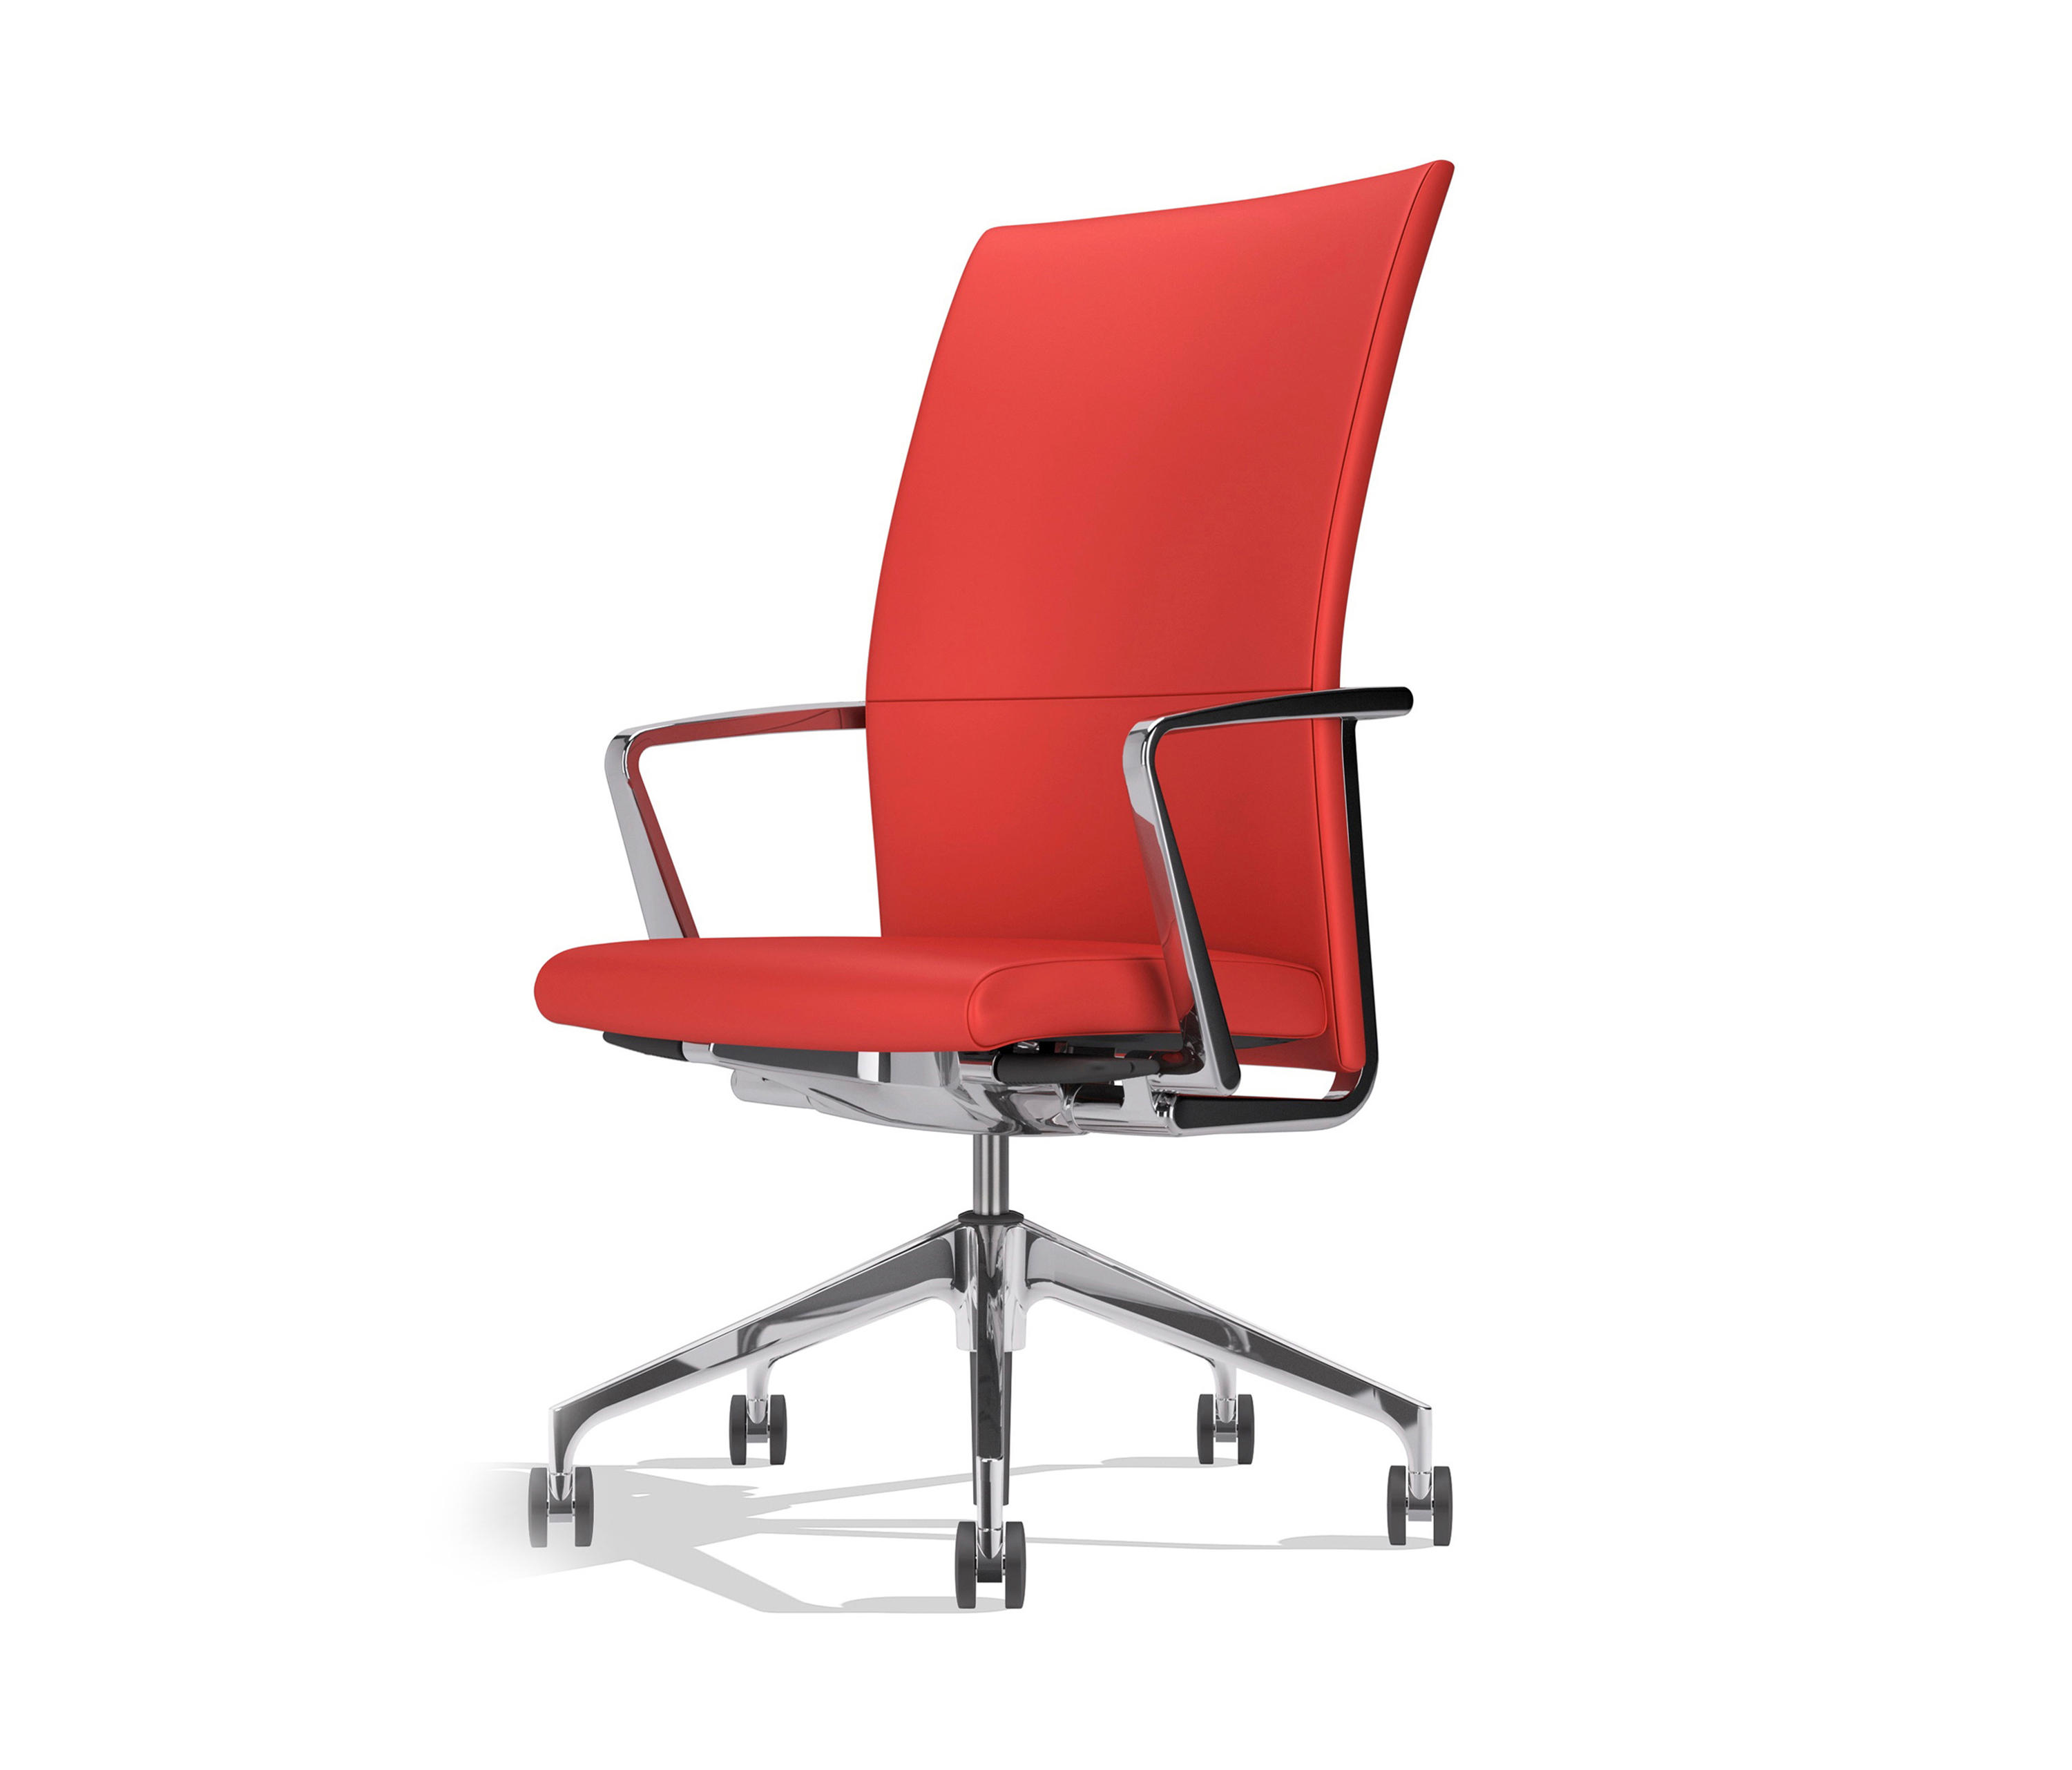 SAVA STANDARD UPHOLSTERY Executive chairs from Stylex